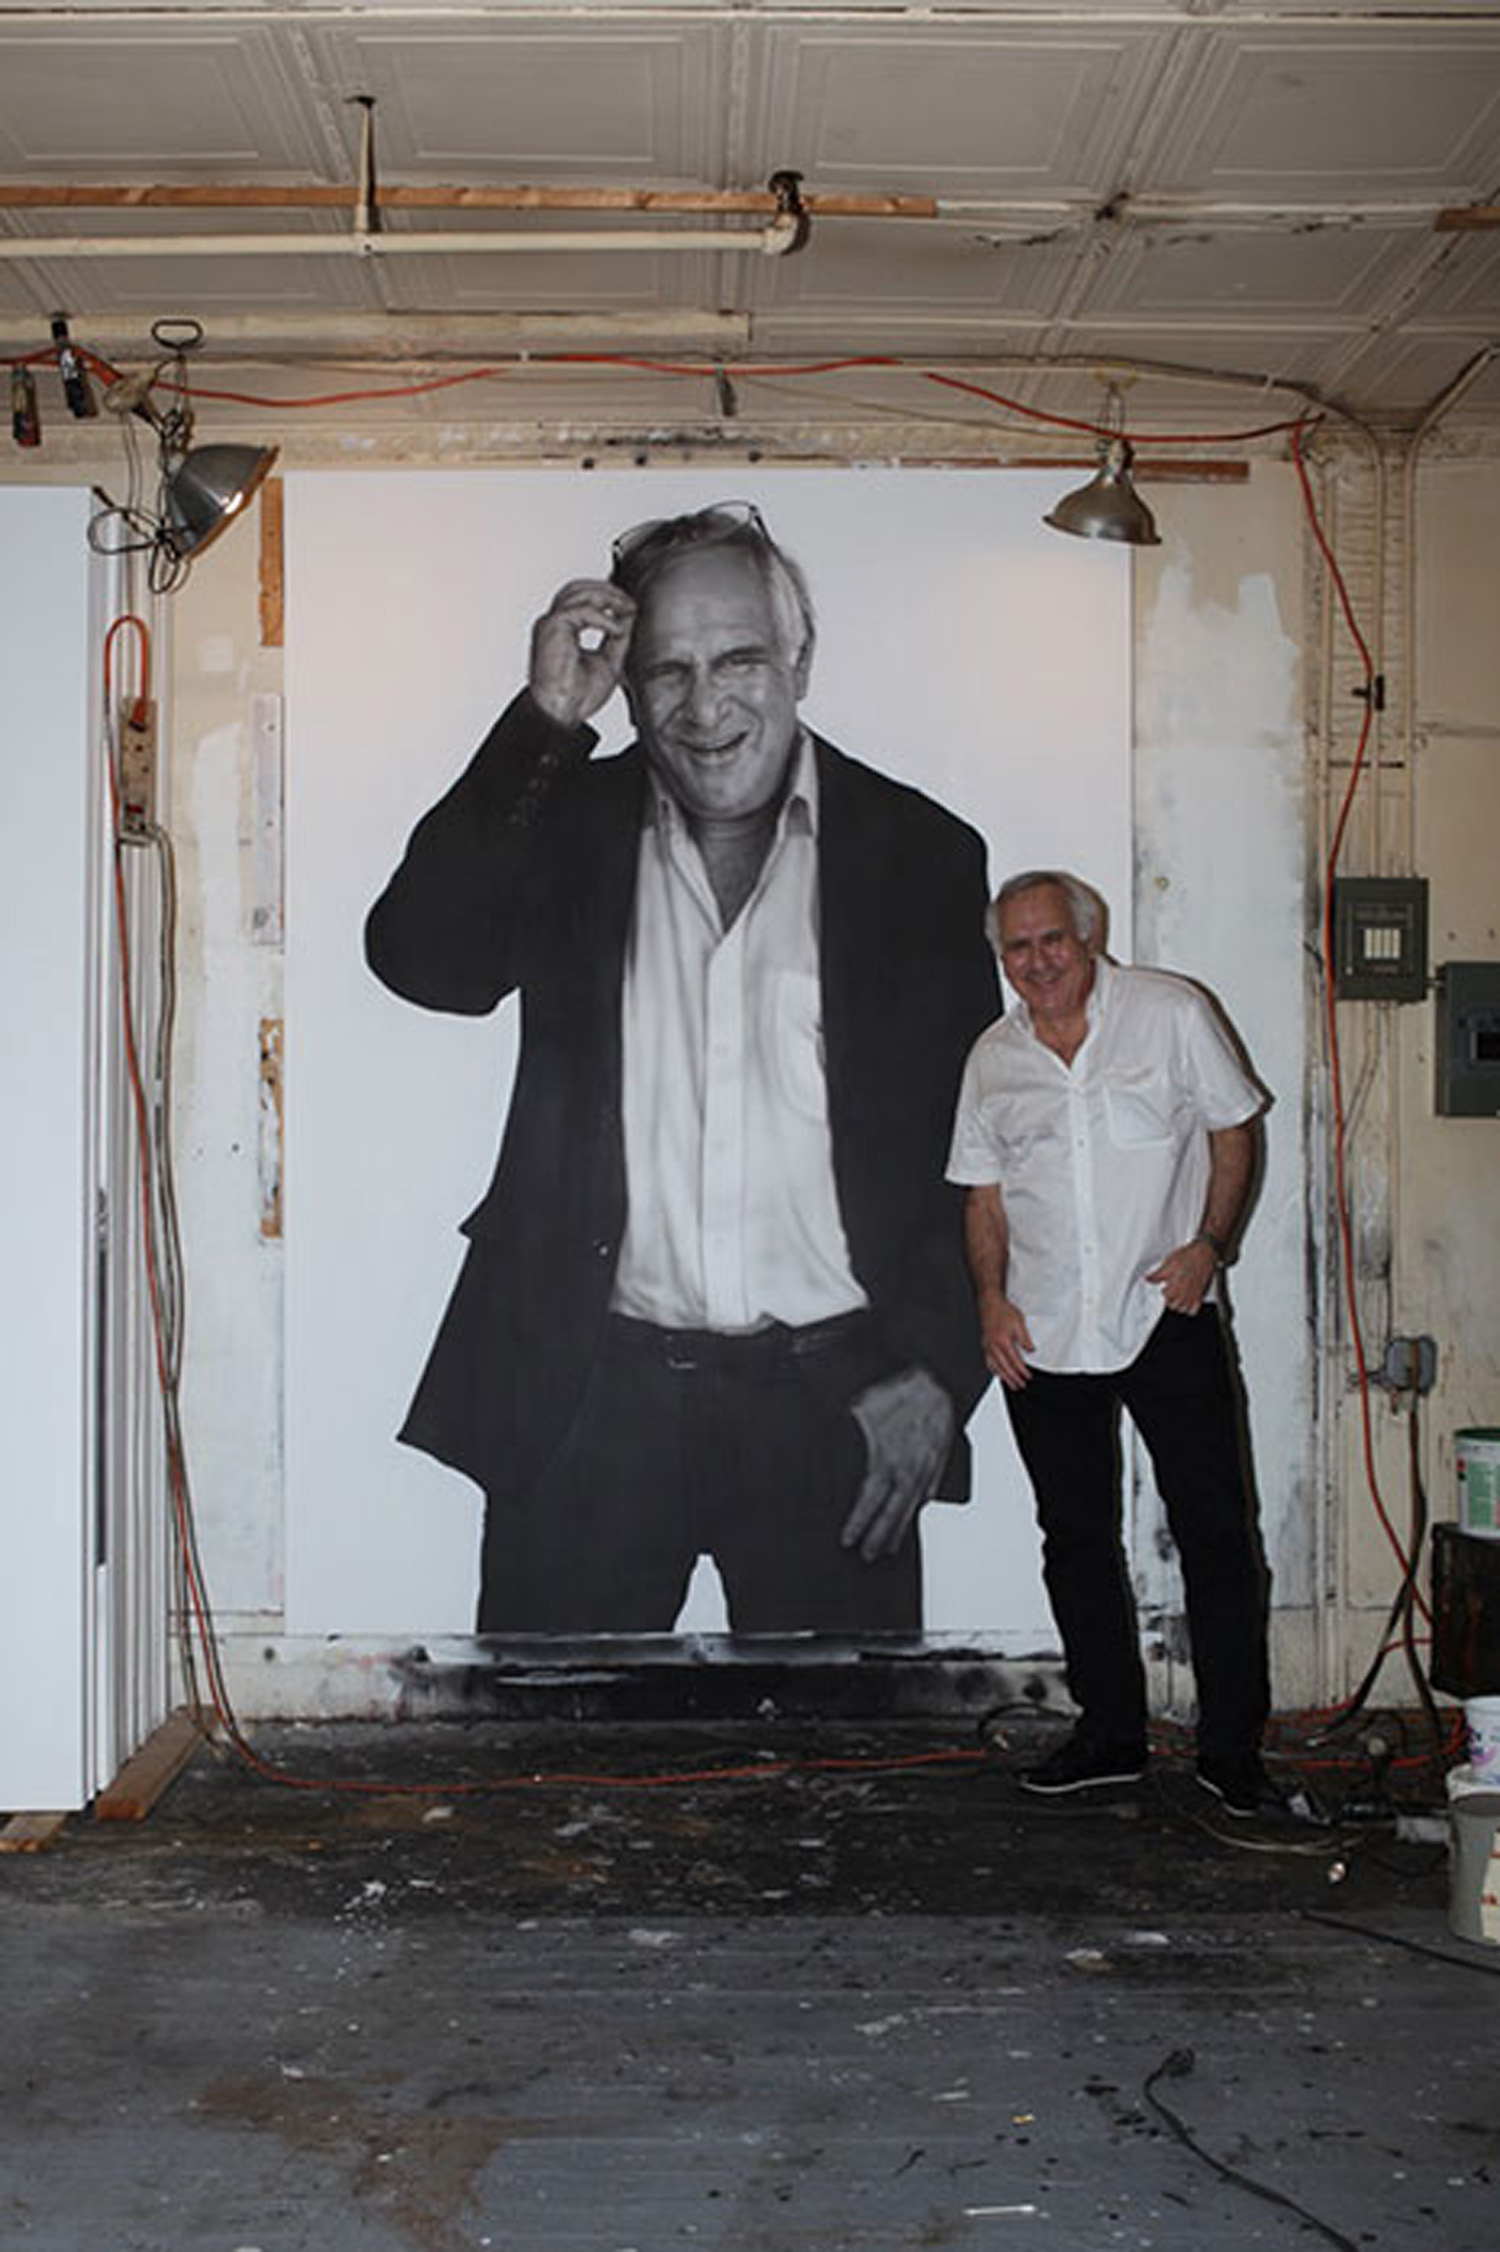 Marc Miller in front of Curt Hoppe's portrait.